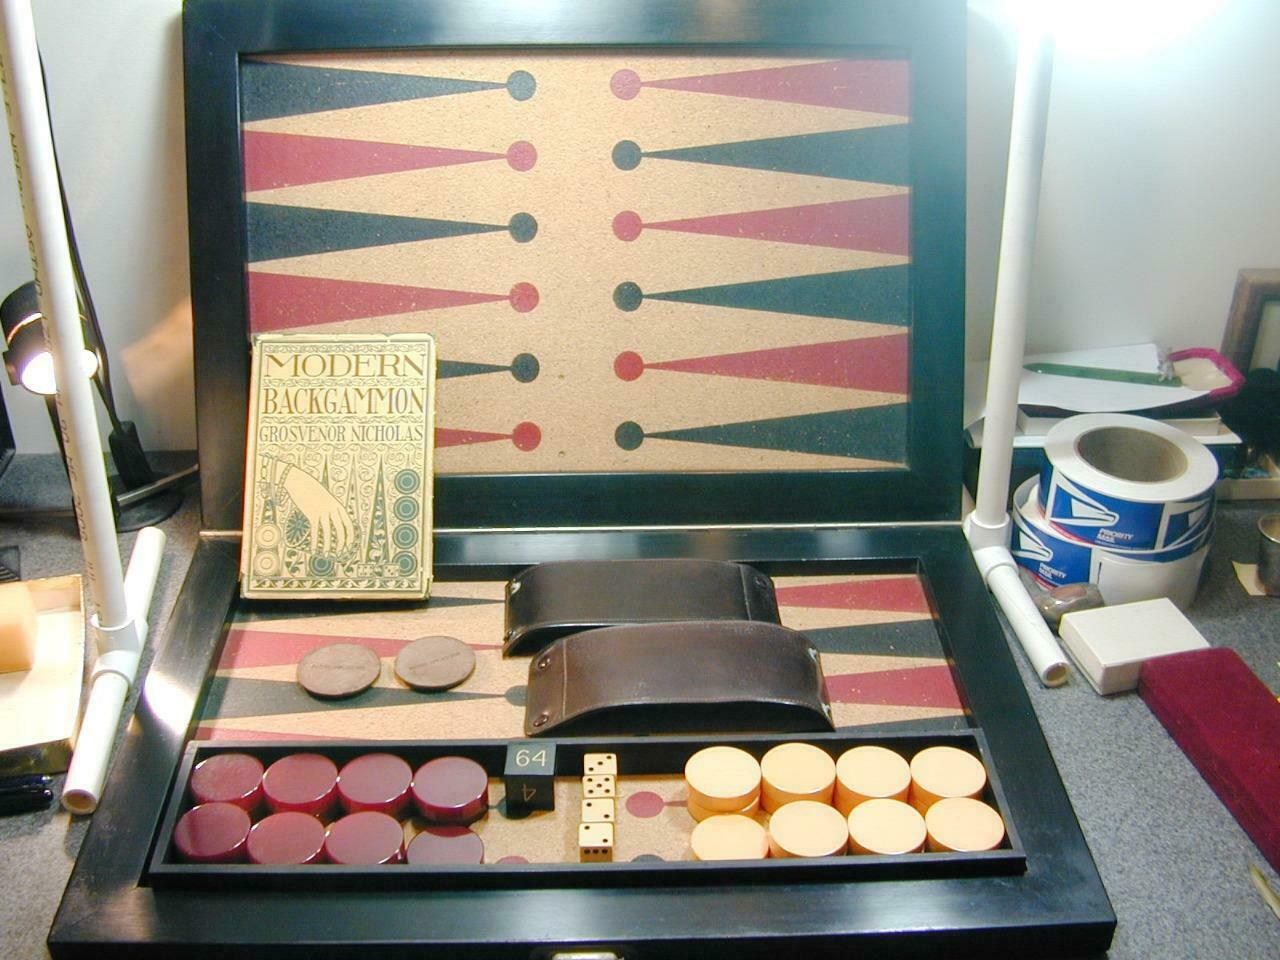 Antiguo torneo de backgammon Set clic clac 1.75  verificadores de Color amarillo crema rojo profundo